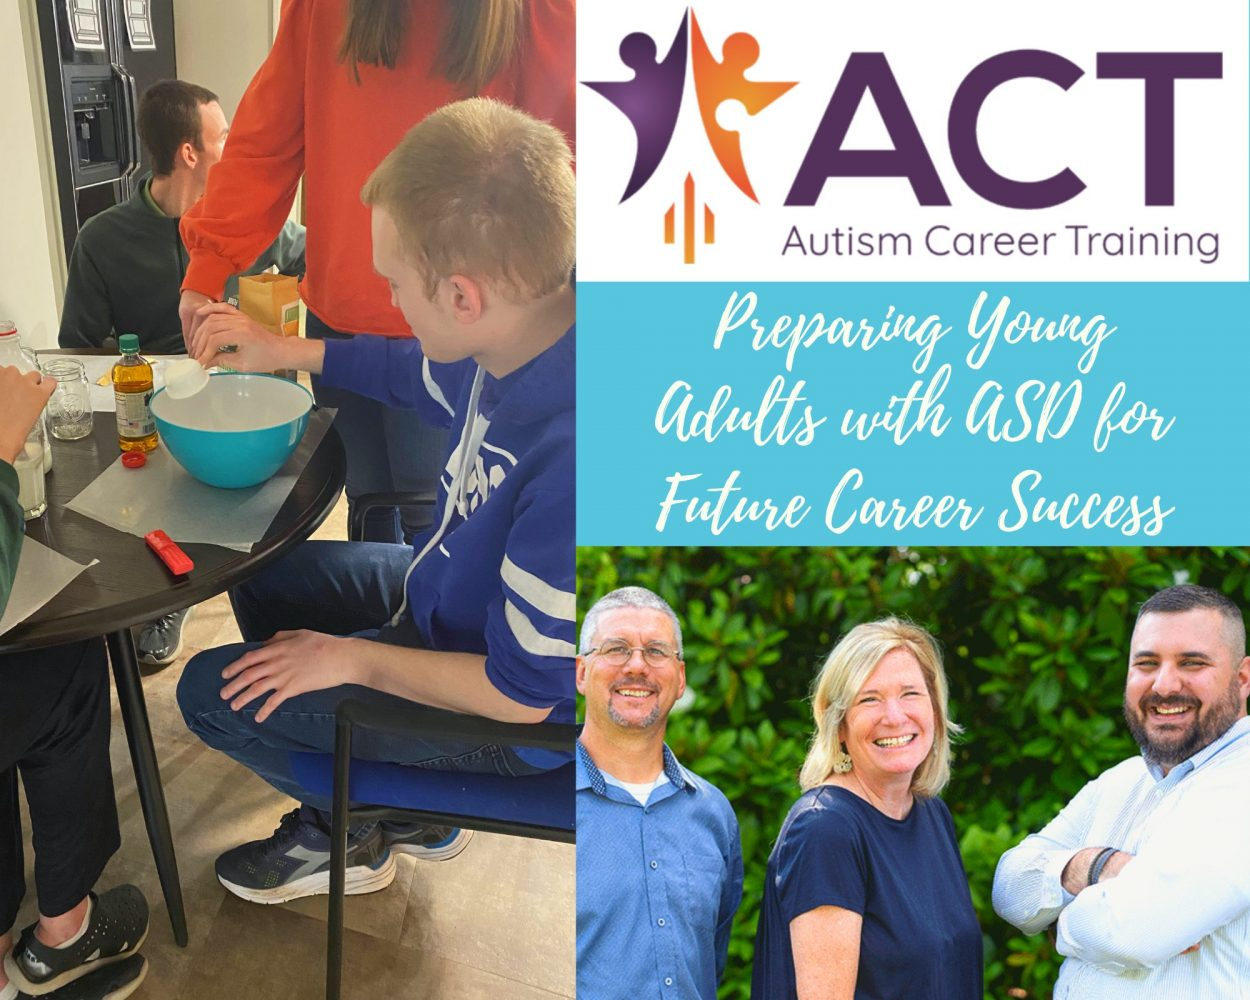 """image with ACT Autism Career Training logo top right below """"Preparing Young Adults with ASD for Future Career Success."""" Below words is an image of 3 people and one image with a person sitting at a table is to the left."""